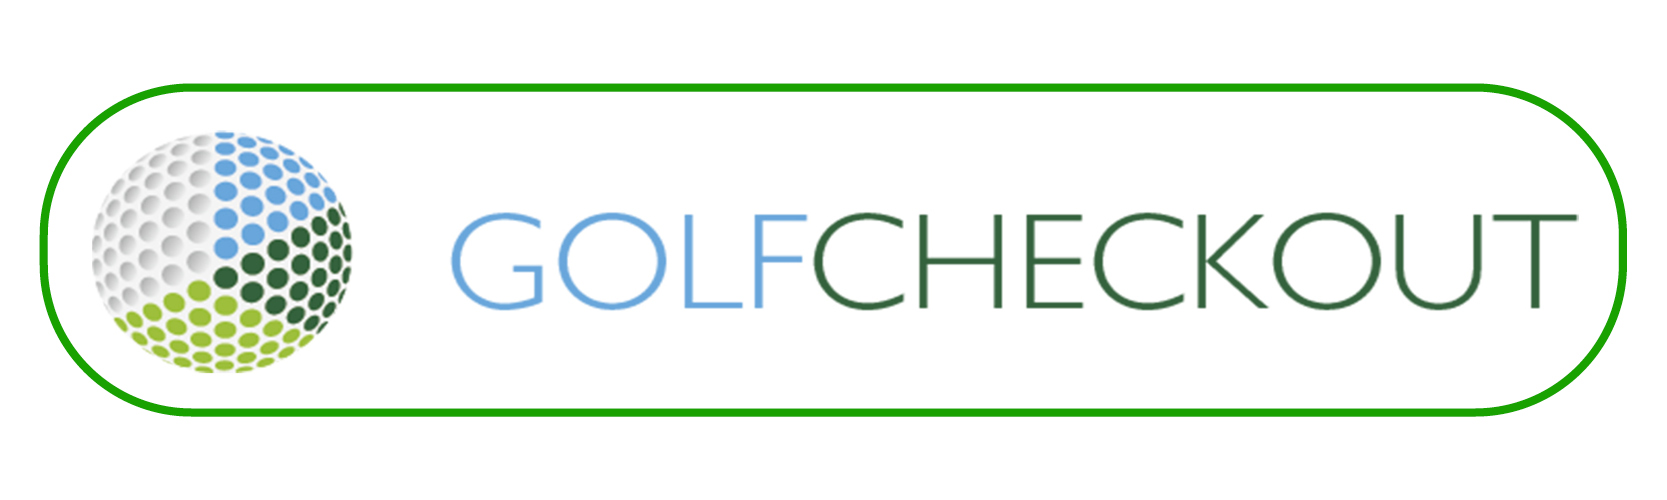 Golf, golf software, online tee sheet, tee time solution, tee time software, technology solution, applications, apps, golfcheckout, golf system, golf management system, 24/7 online, web application, technology golf services, desktop, mobile, golf course services, golf ontario